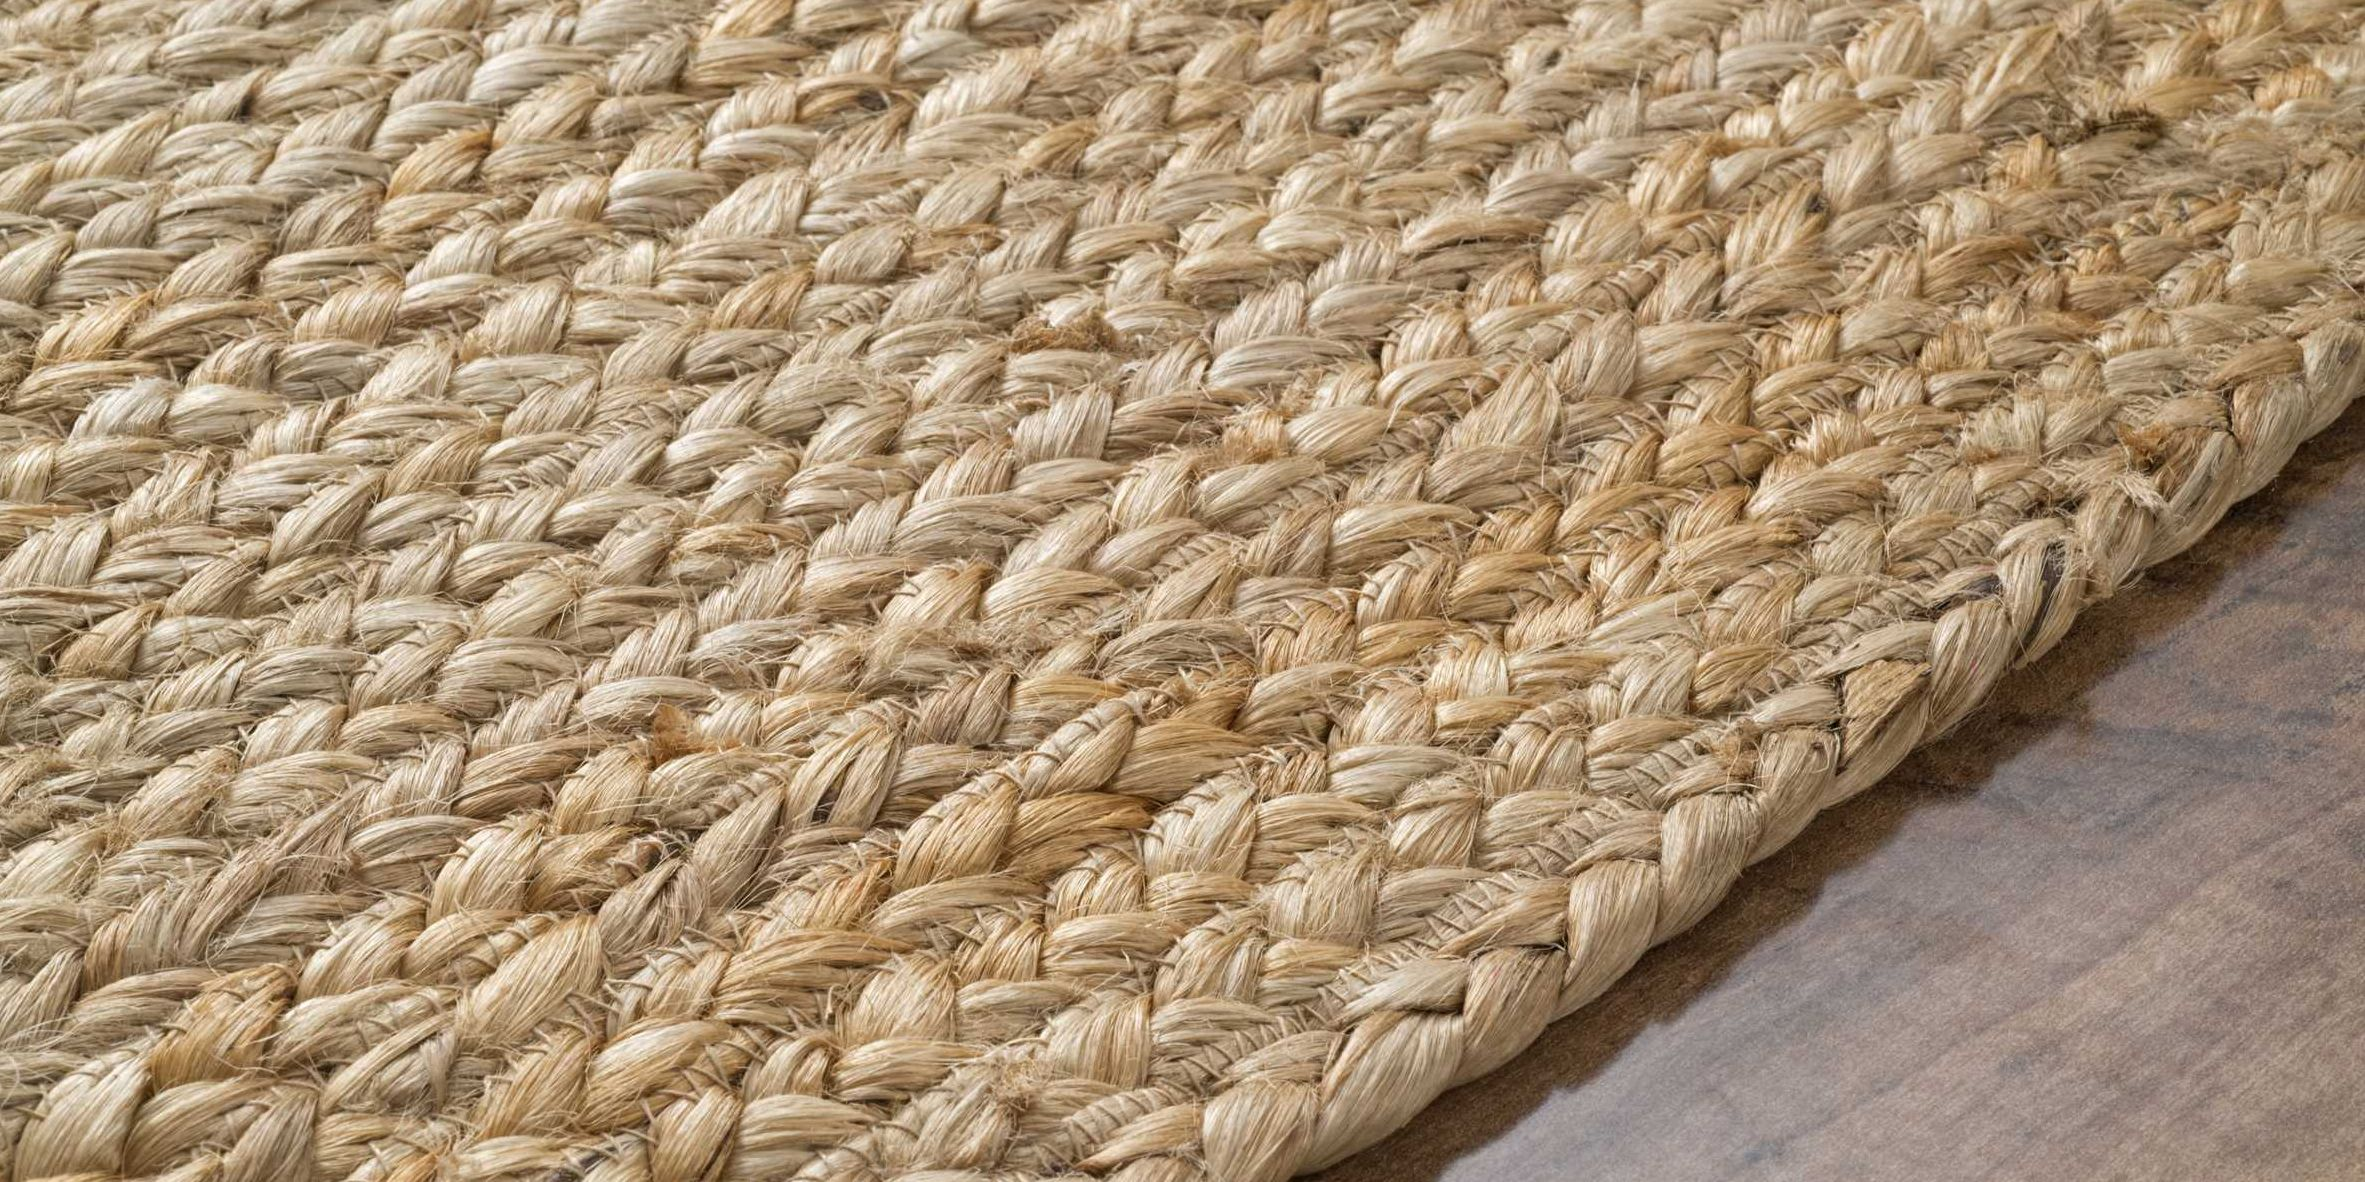 10 best natural fiber rugs in 2018 - unique jute rug reviews